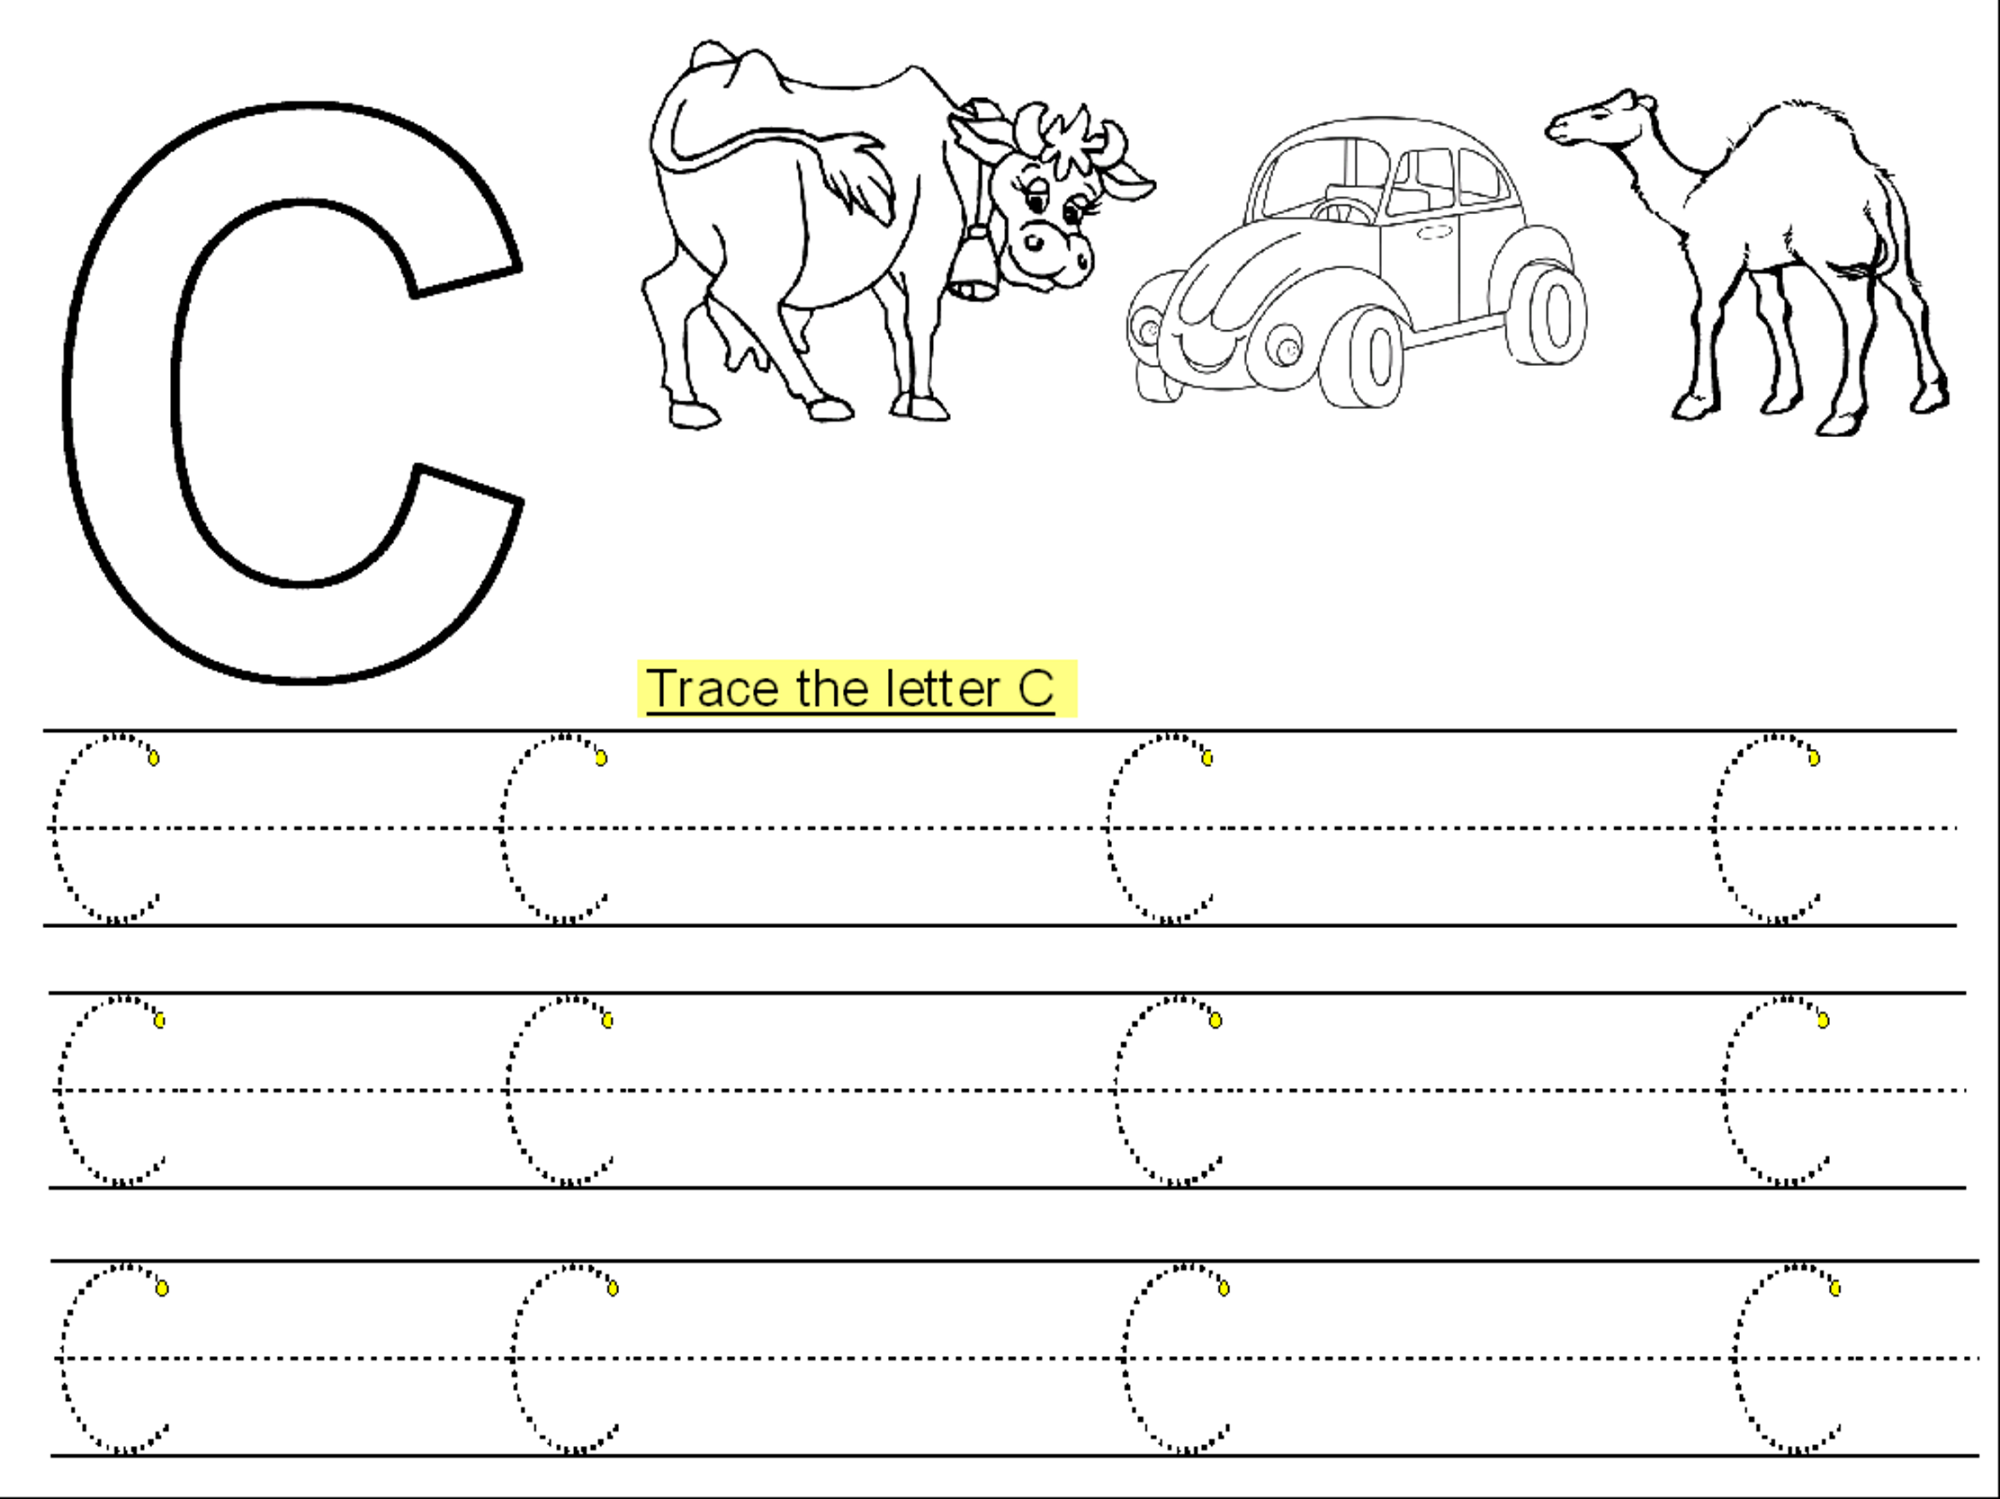 Worksheets Letter C Worksheets Preschool trace letter c printable kiddo shelter kids worksheets worksheetsworksheets for kindergartenkids